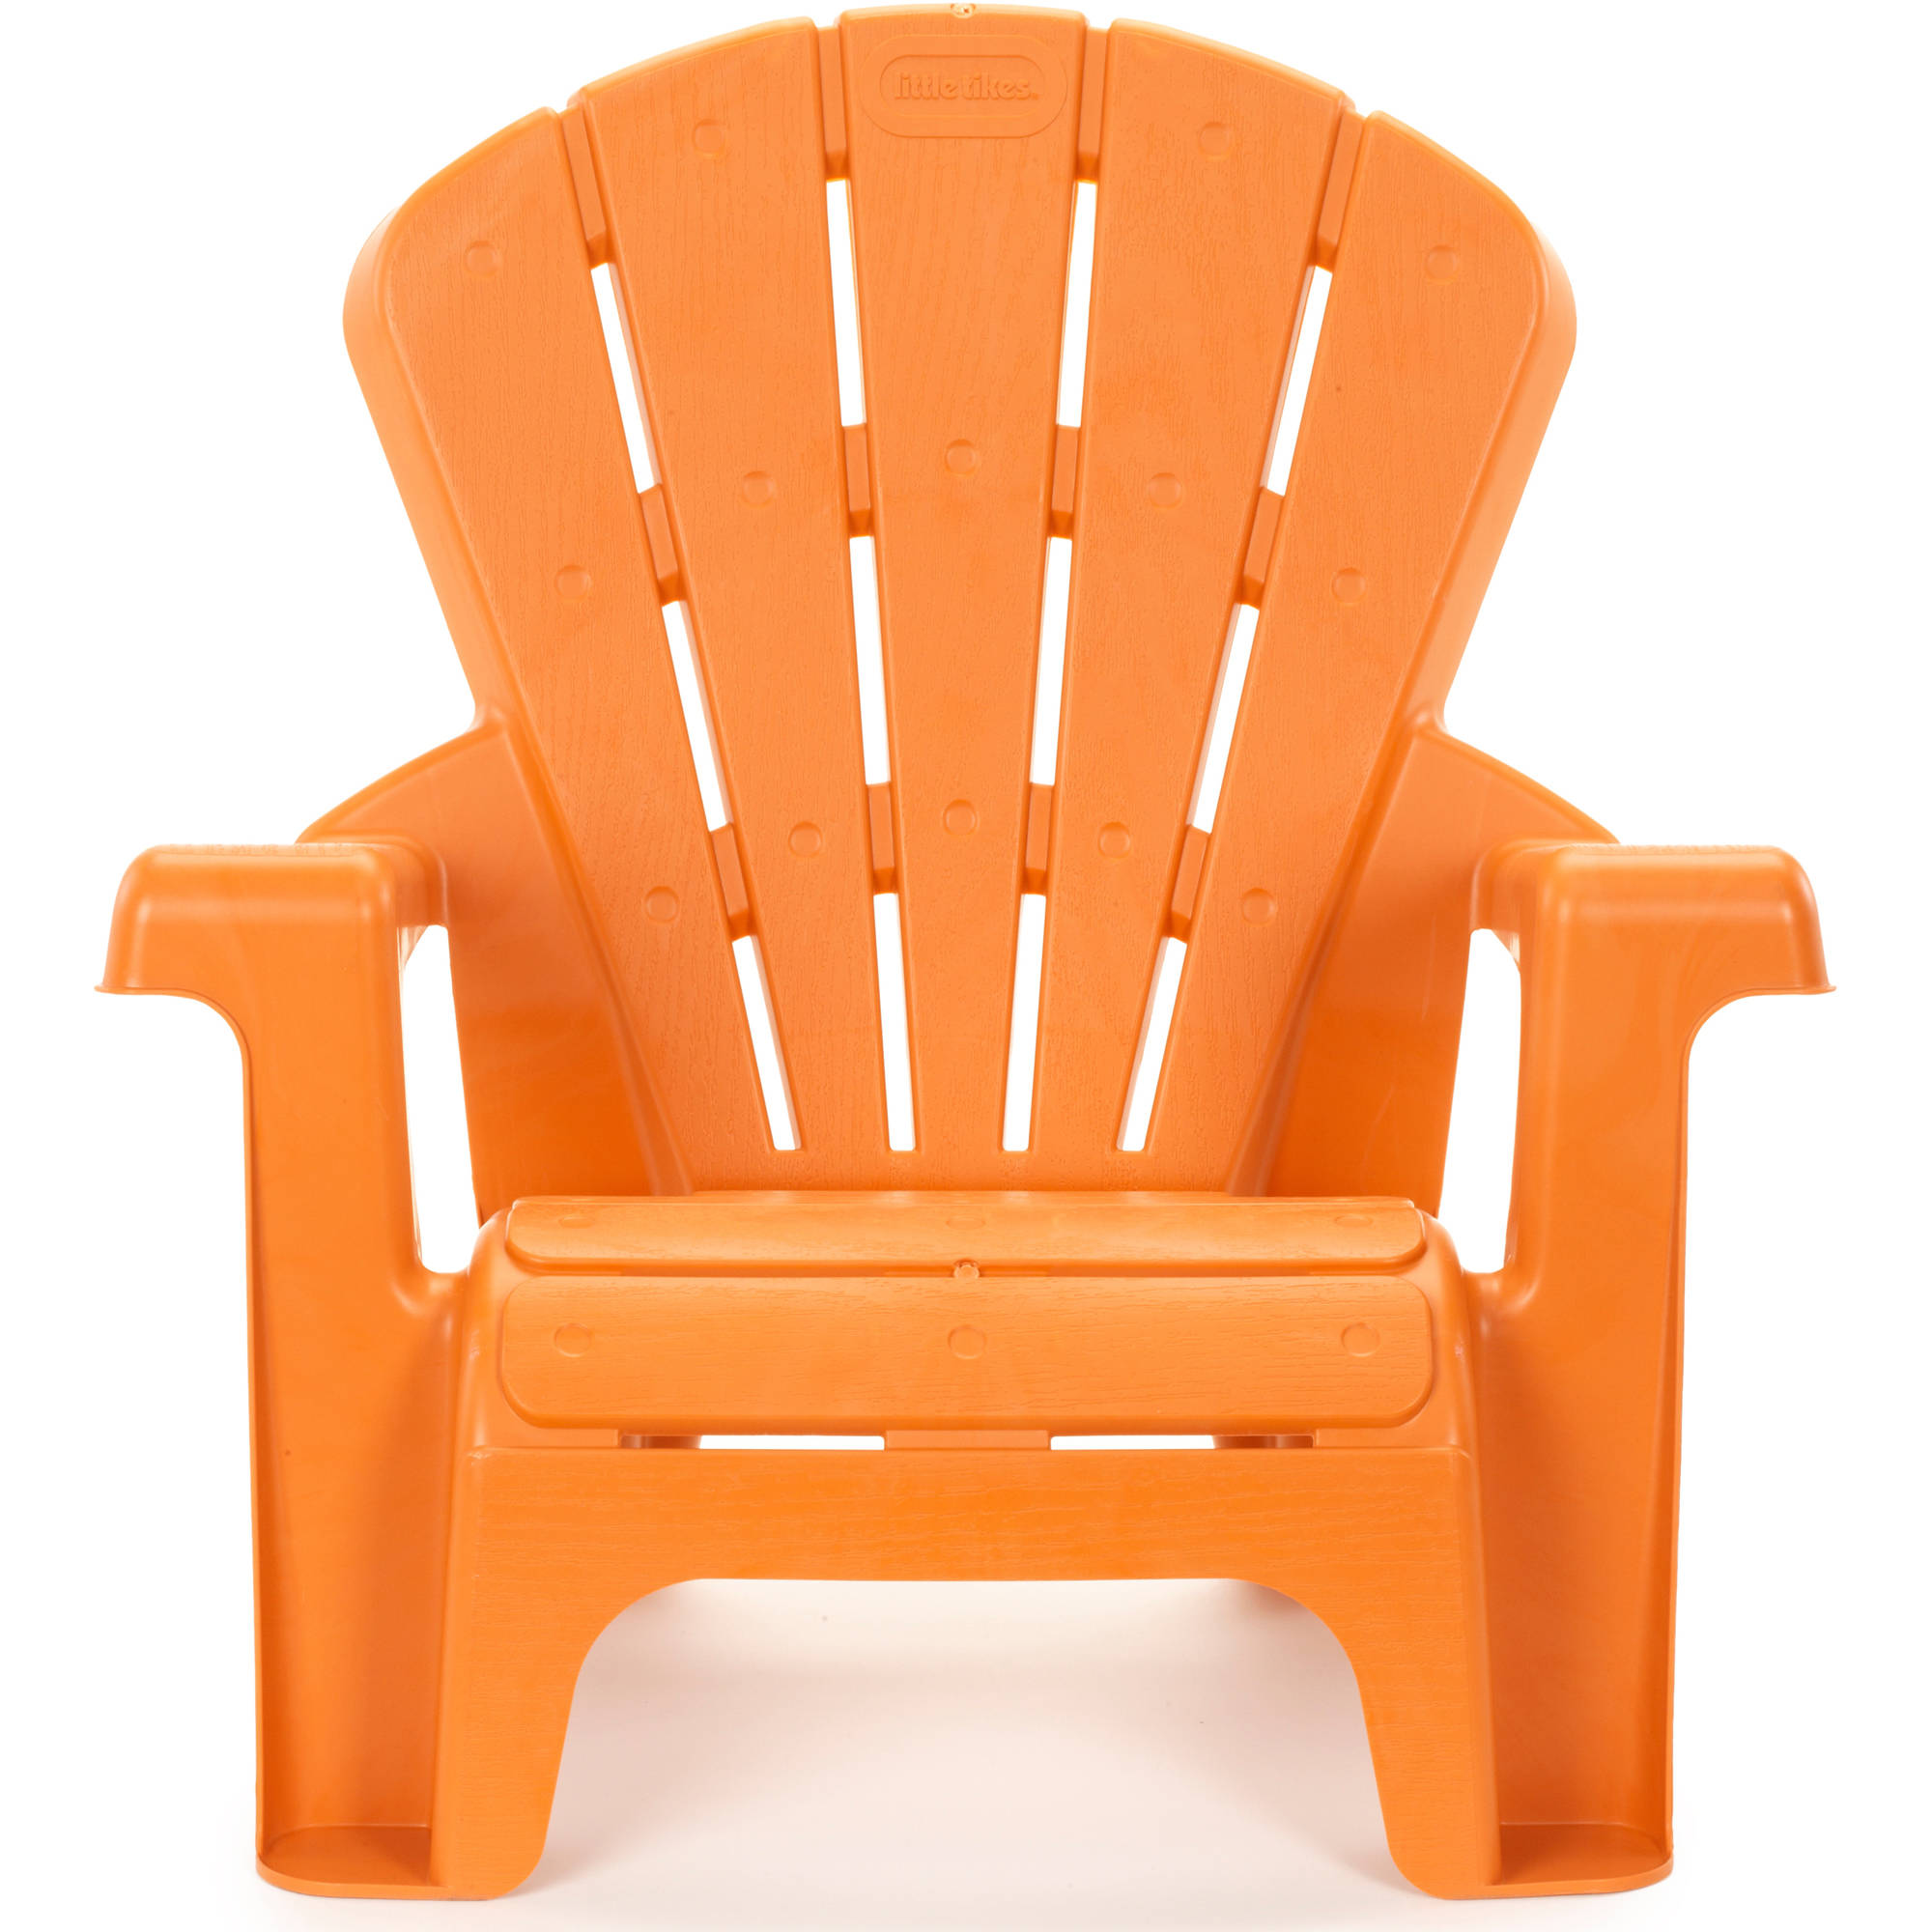 Little Tikes Garden Chair, Orange   Walmart.com